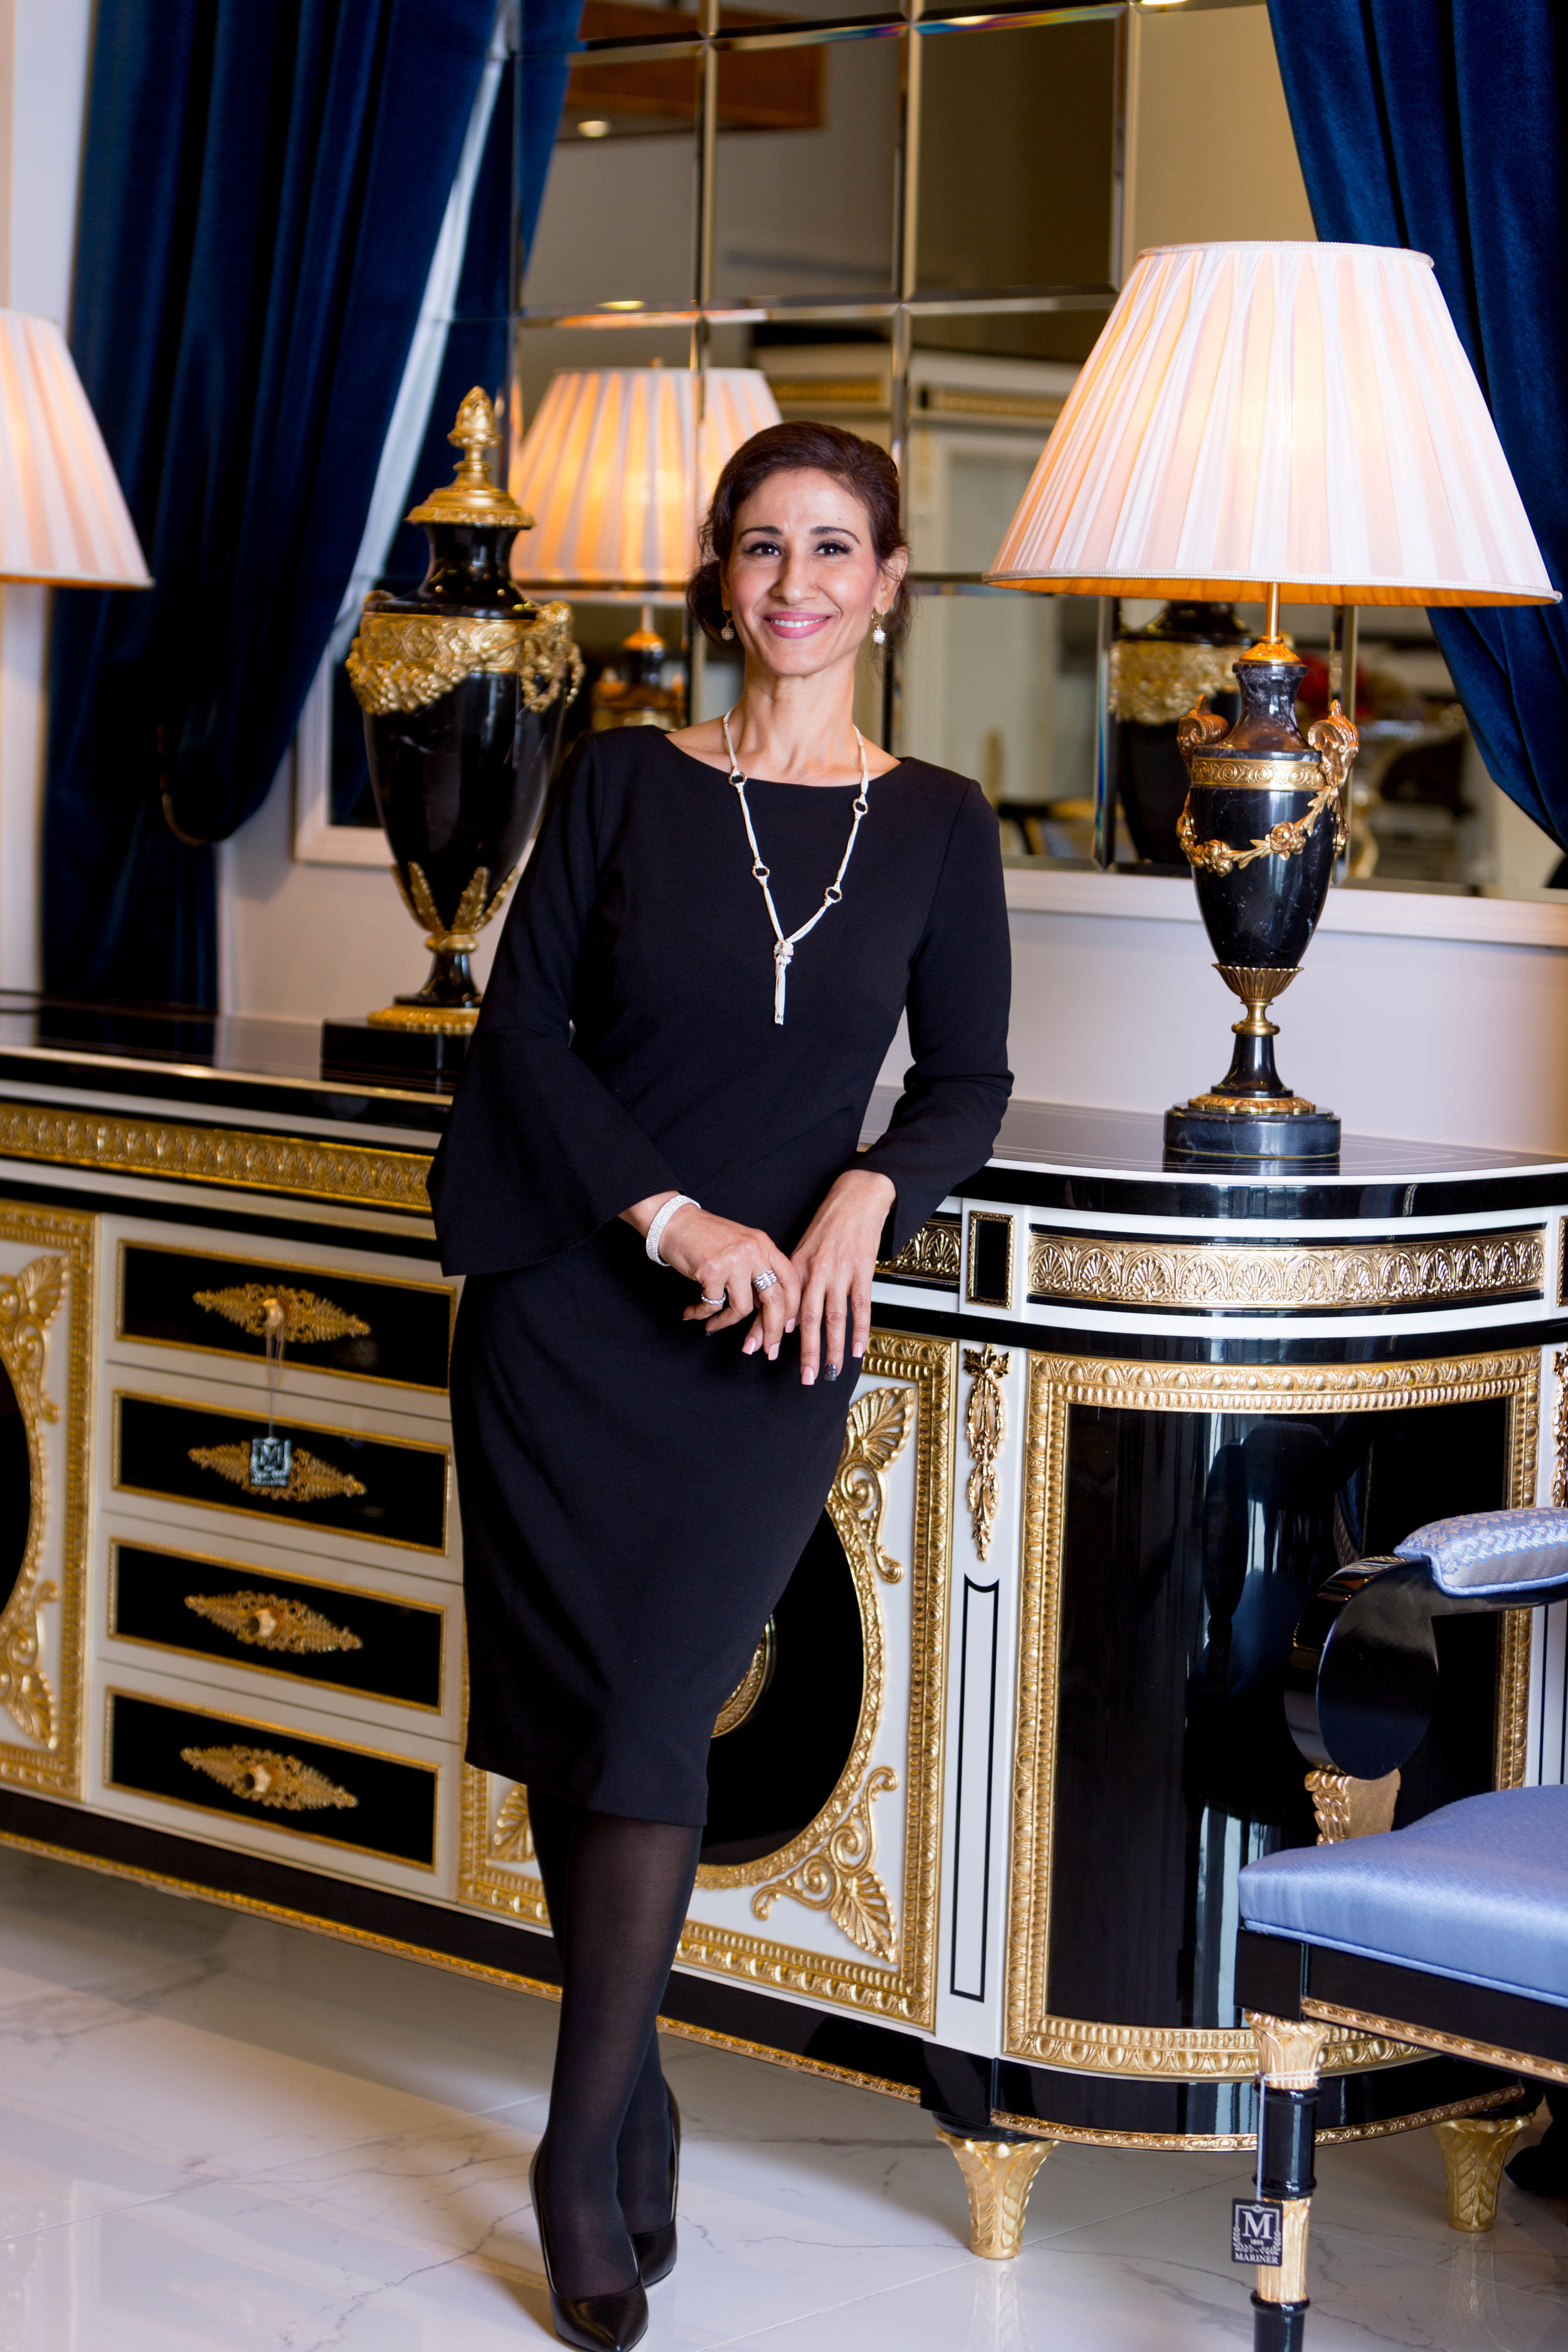 Aida Mohamed,Owner - Stay humble, work hard, be kind, and independent.